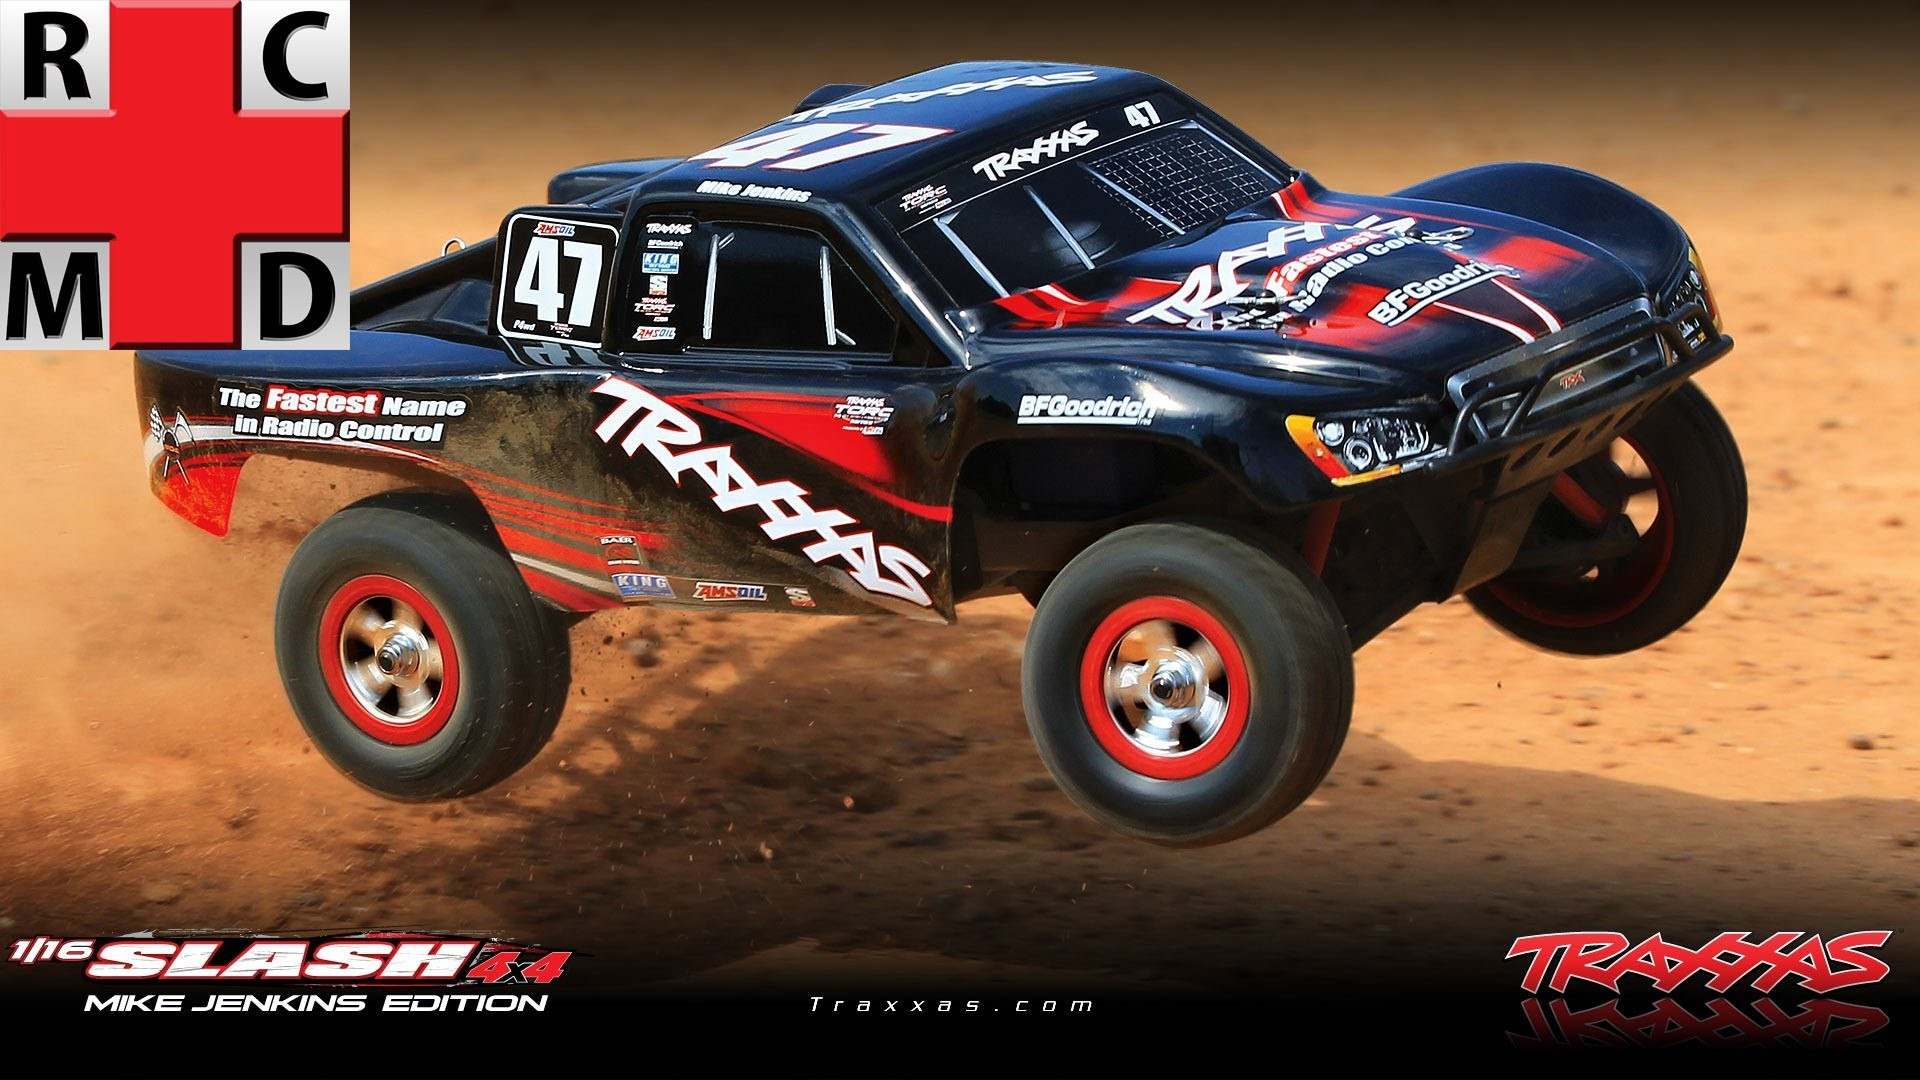 1920x1080 The R/C M.D. - 1:10 Traxxas Slash 4x4 VXL Review